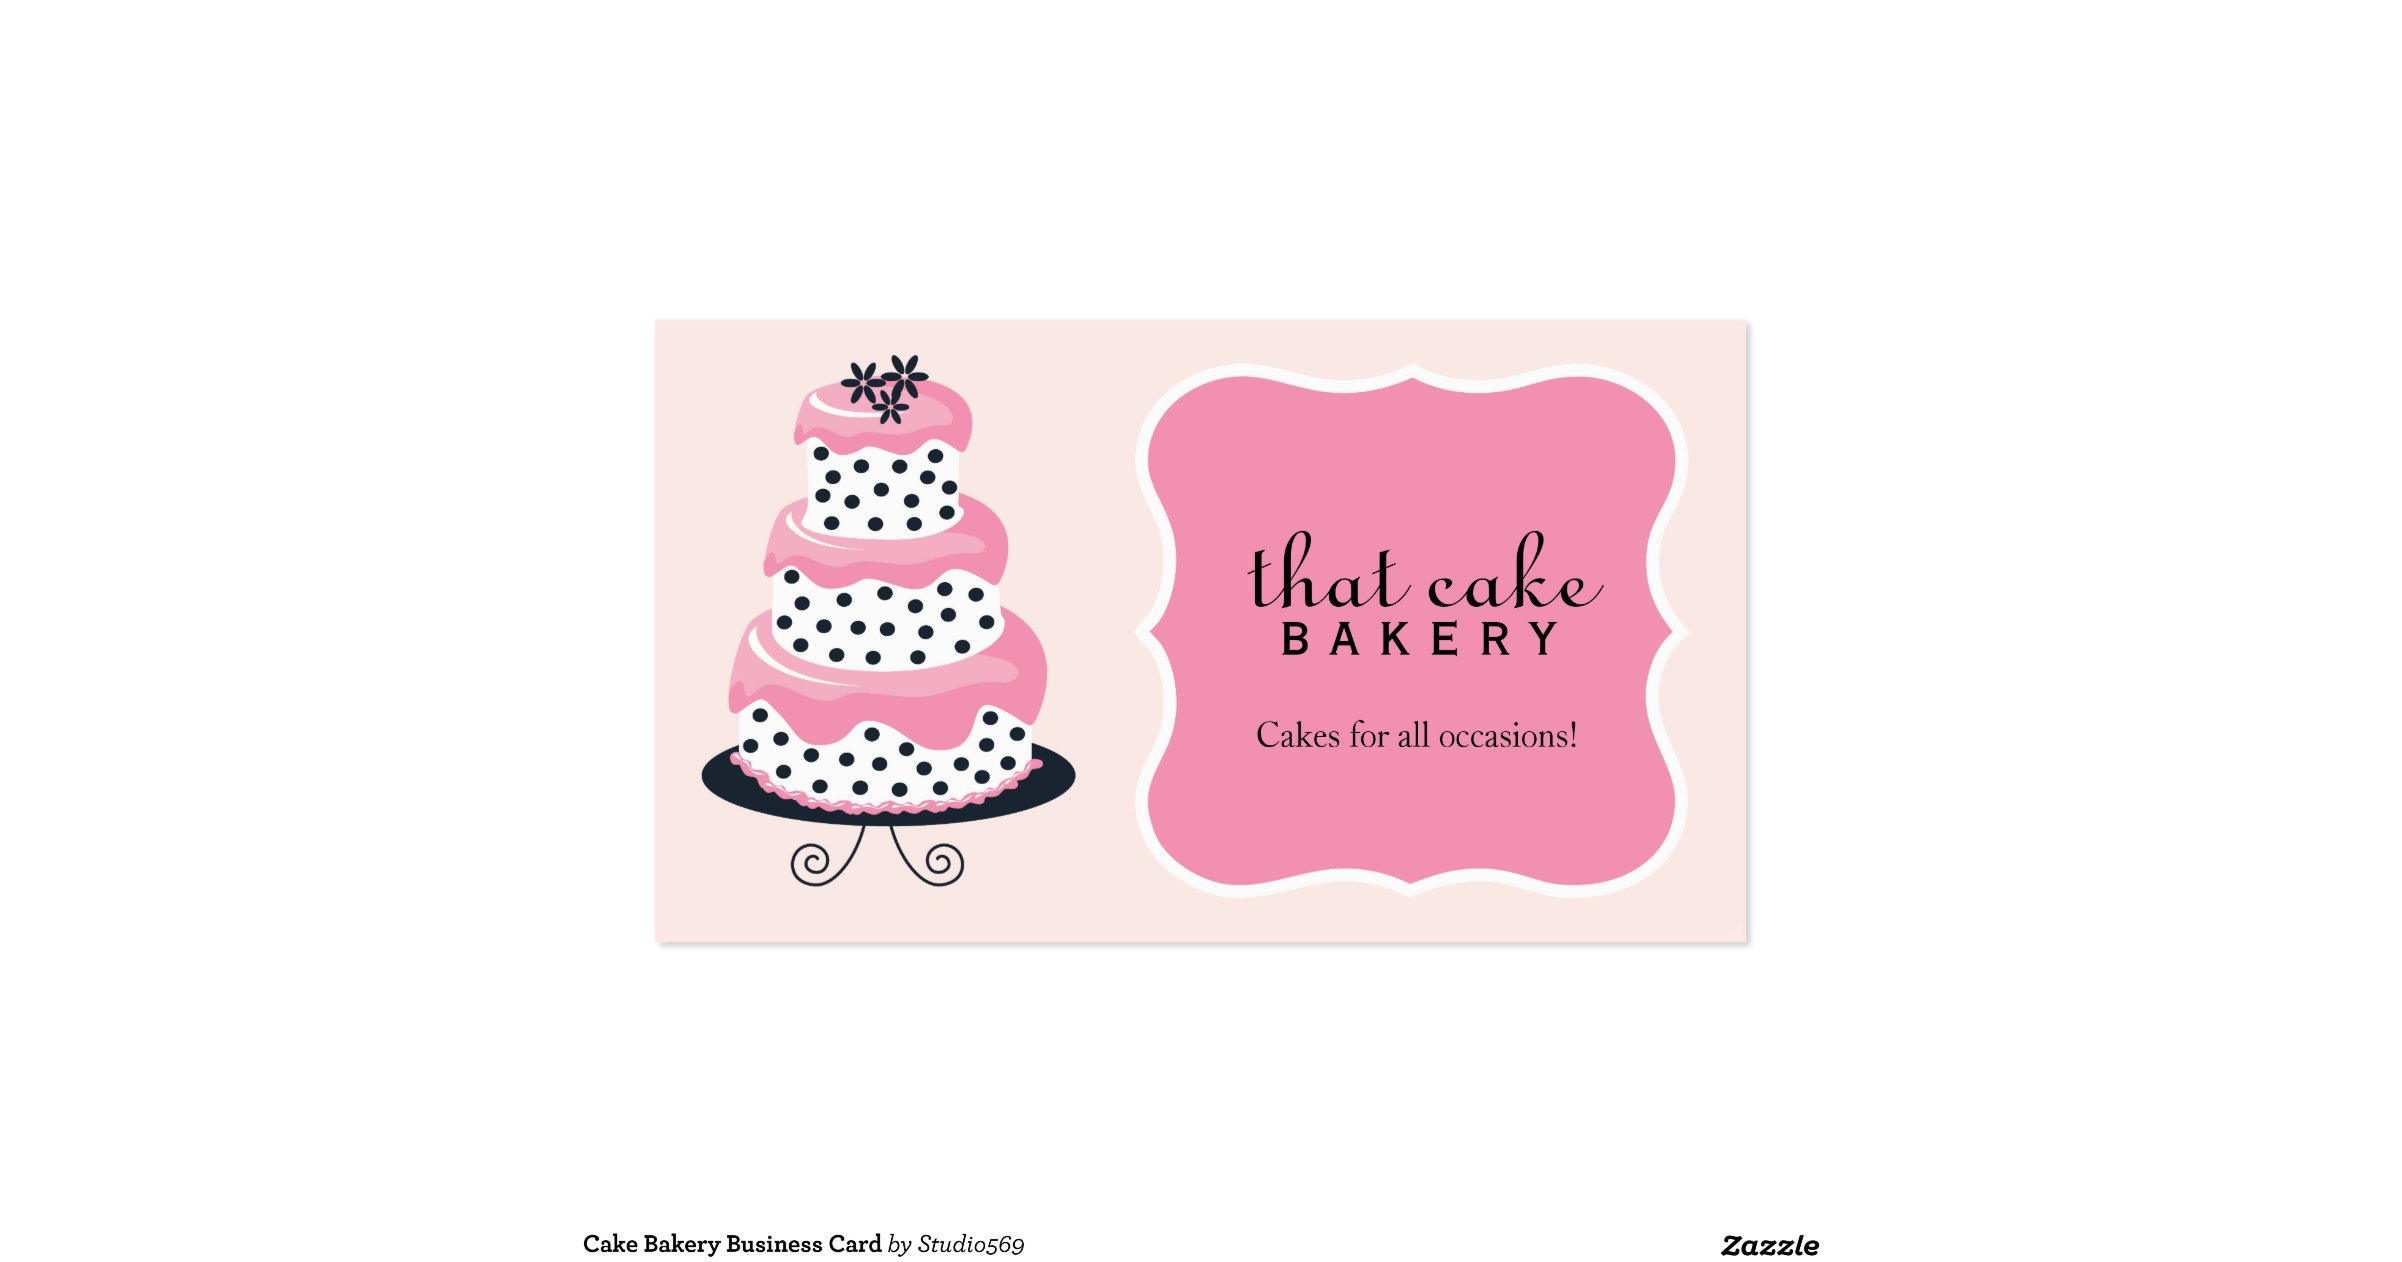 Bakery Business Card Images - Free Business Cards